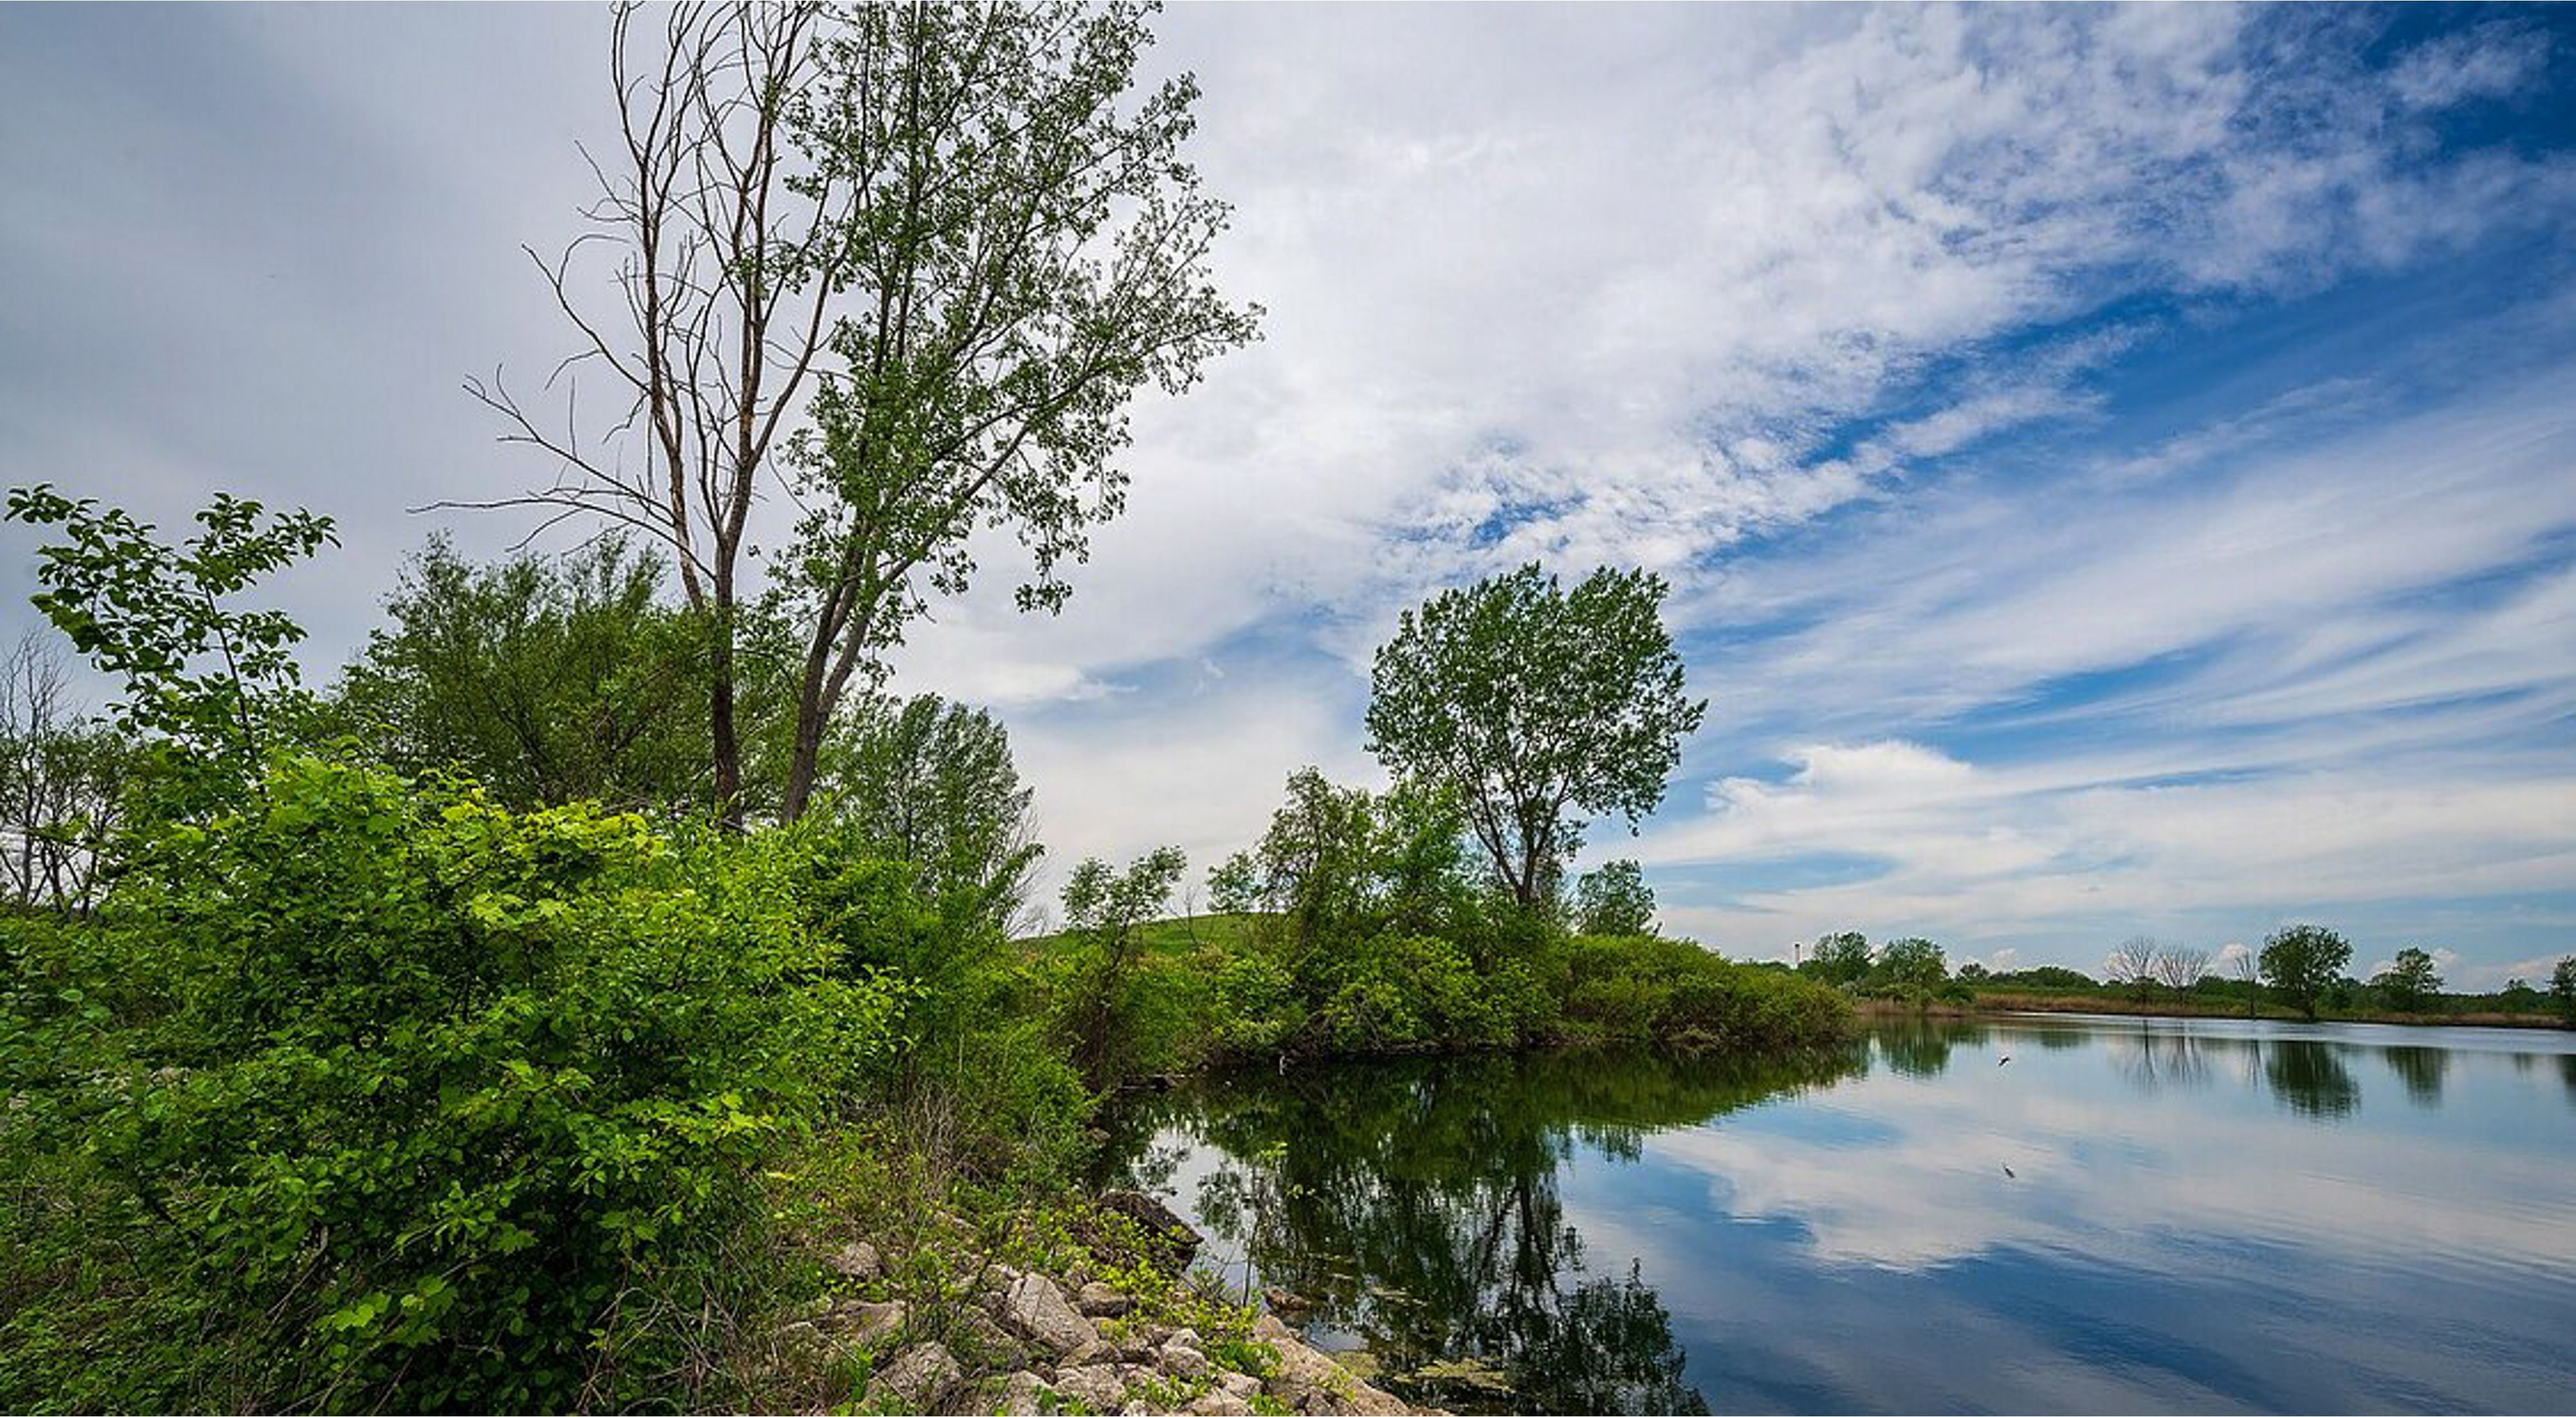 Rocky shoreline and green foliage along the banks of the Saginaw River under a blue sky.